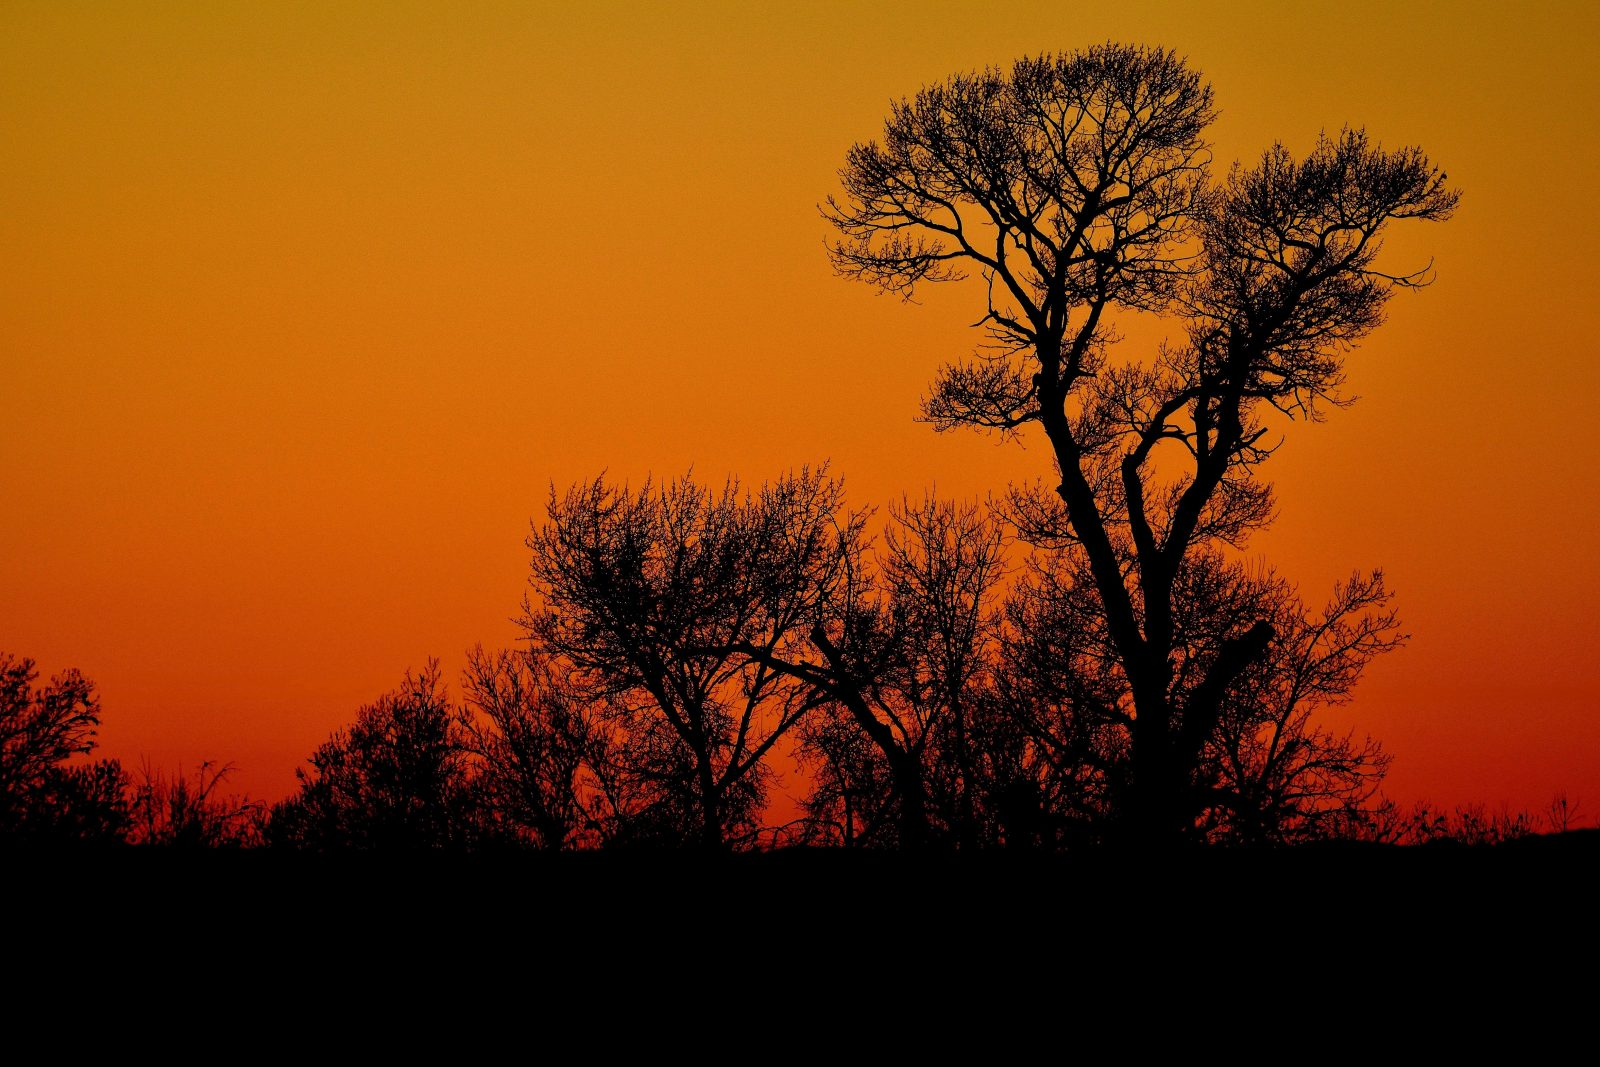 Sunset and Silhouette